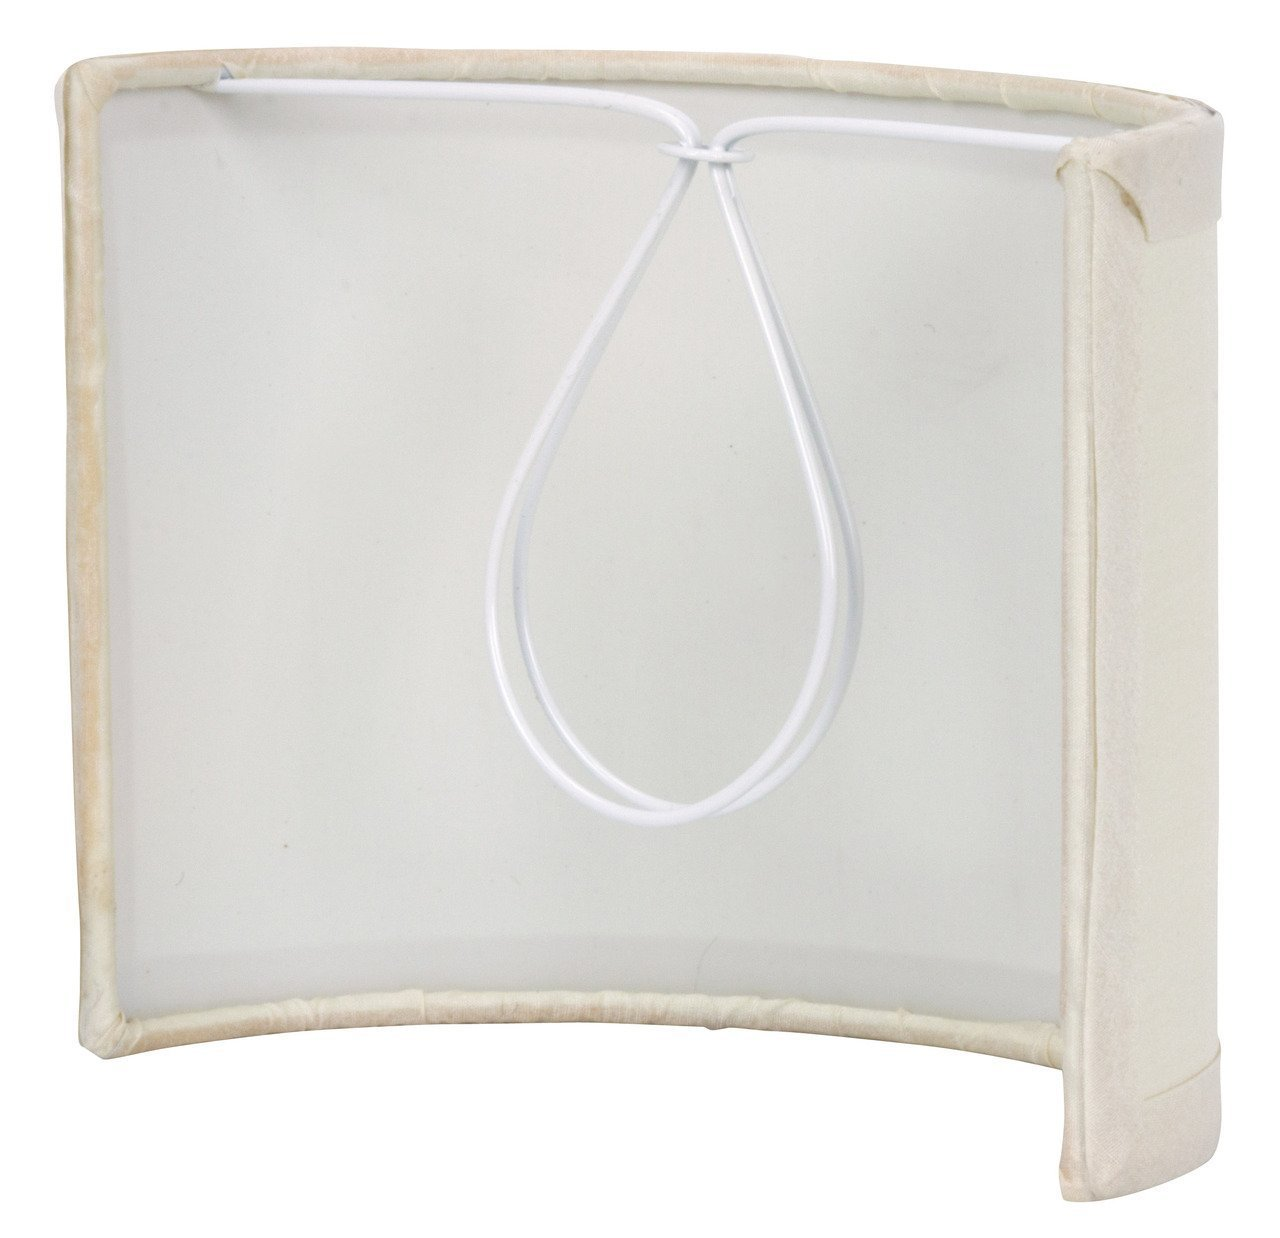 Upgradelights 6 Inch Clip On Wall Sconce Shield Half Lampshade 6x6x5 (White Silk)